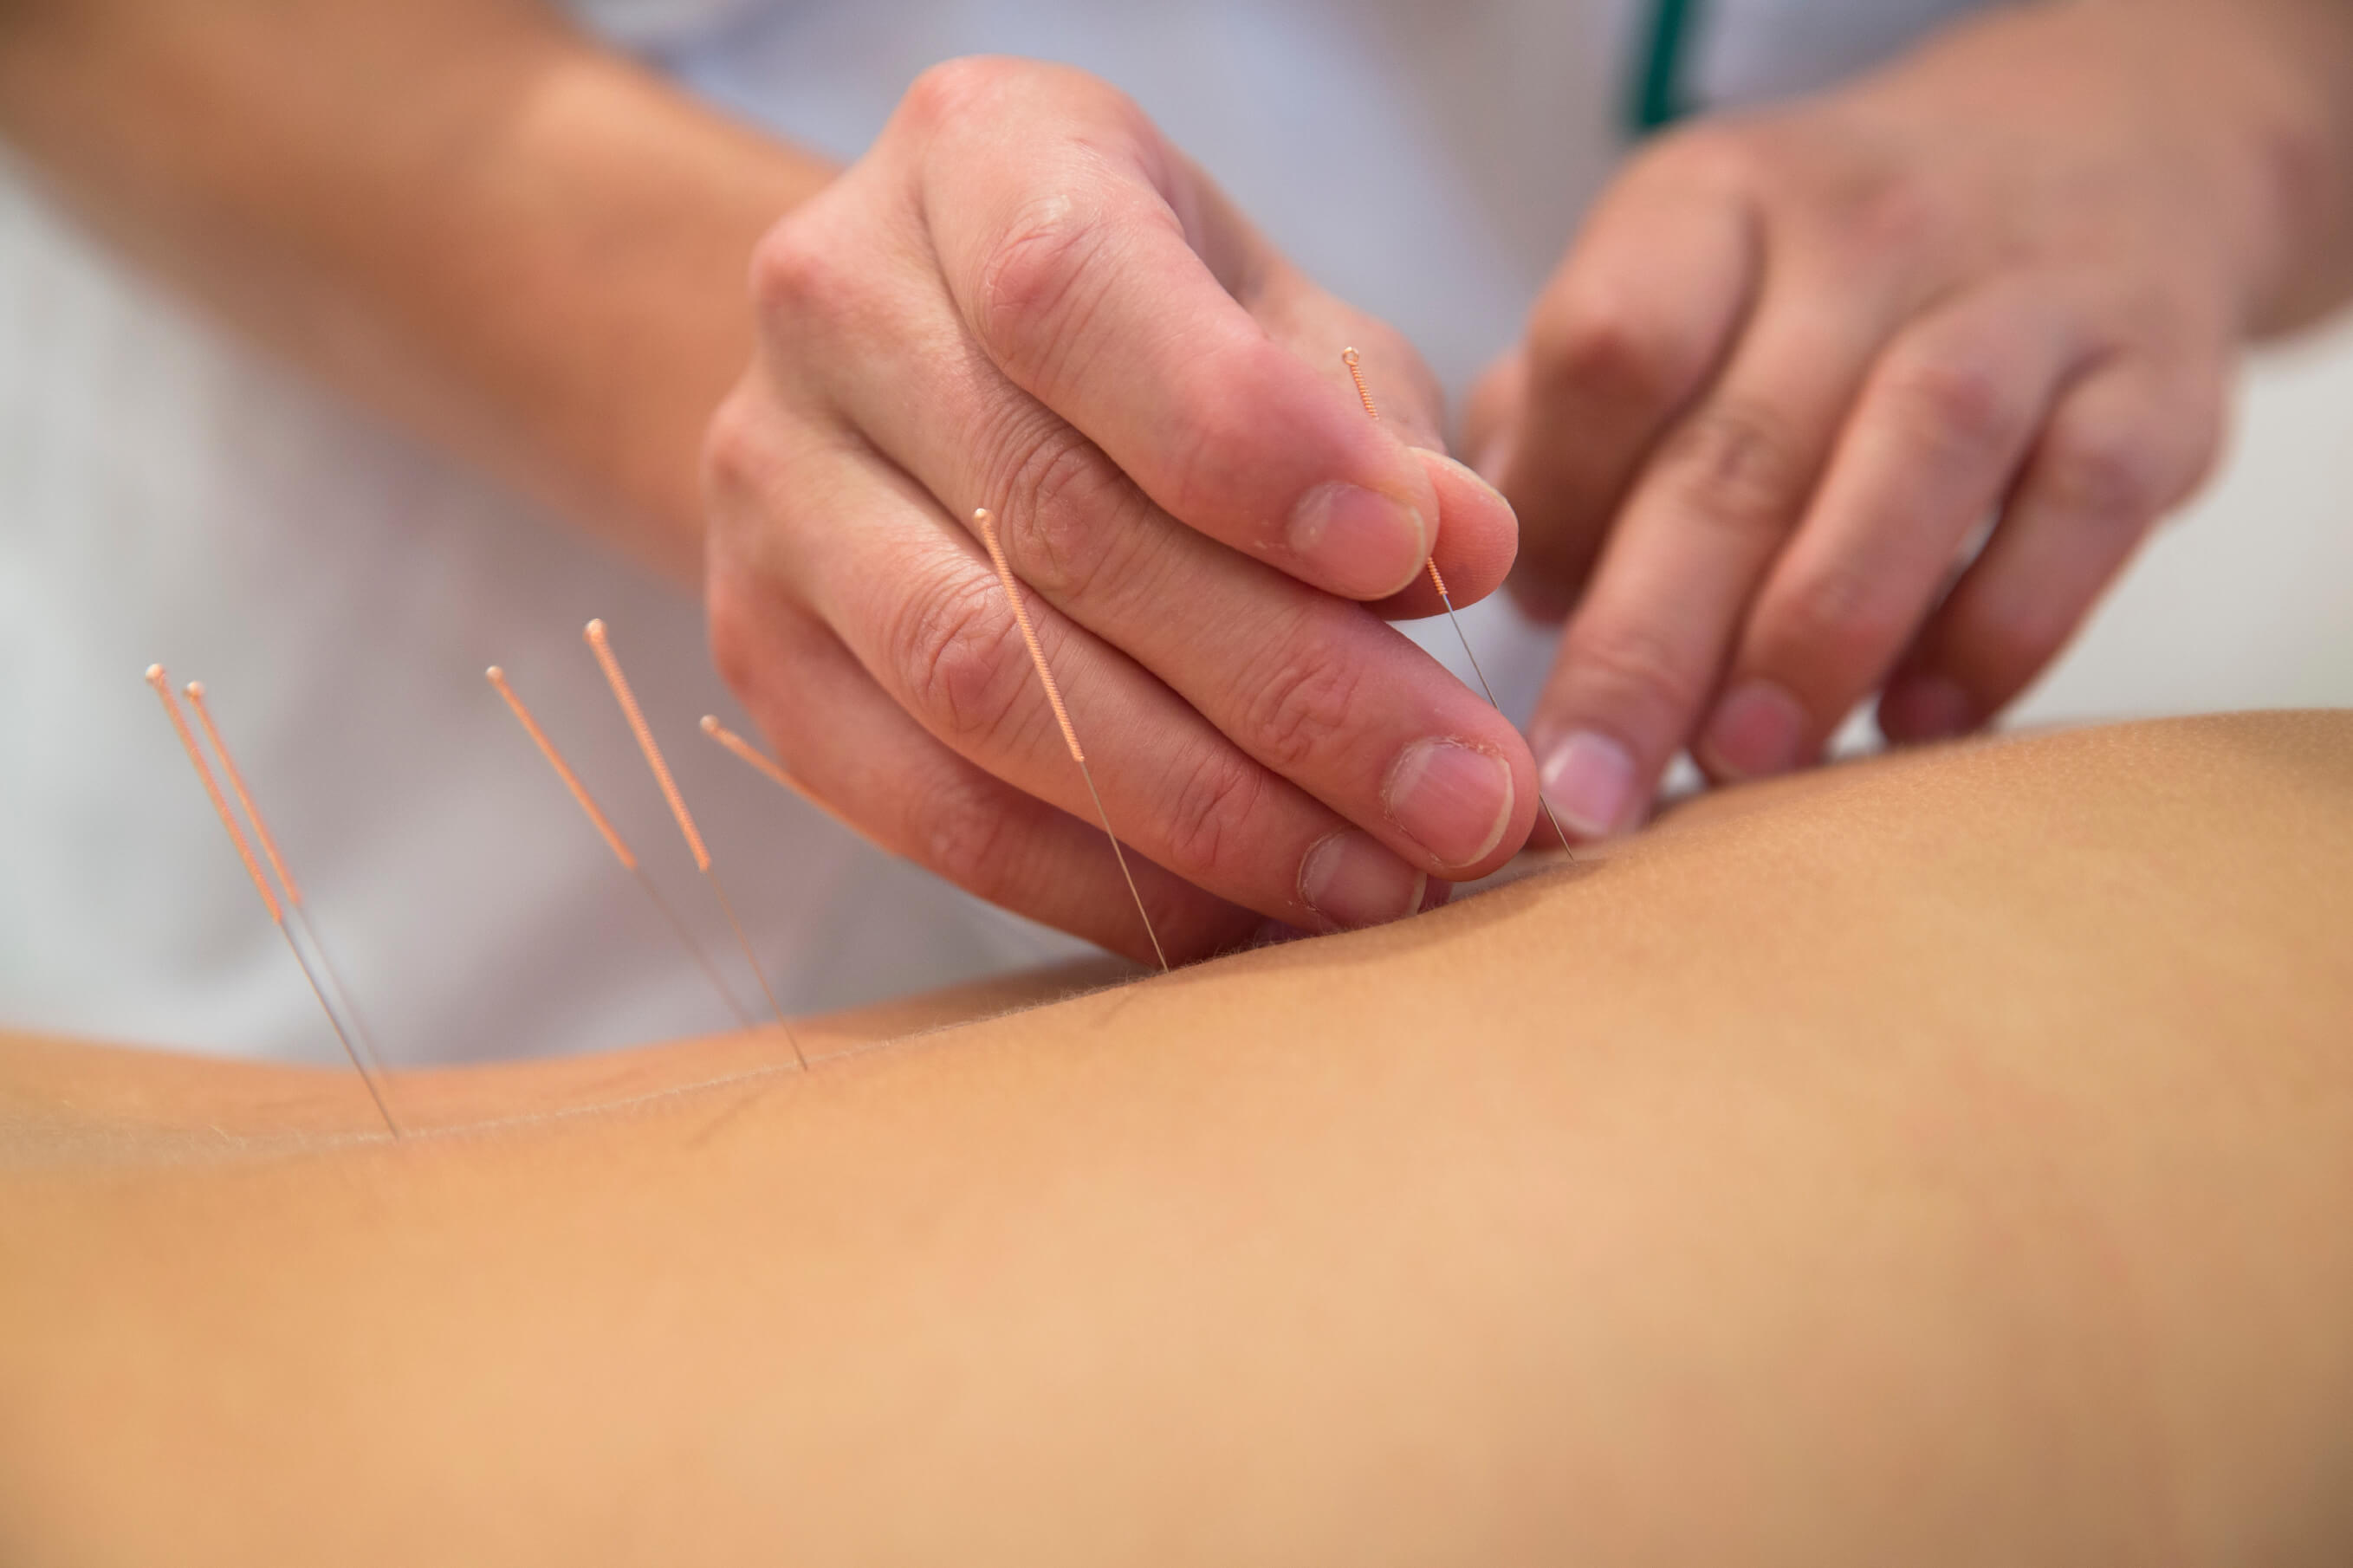 internal acupuncture for backpain 8